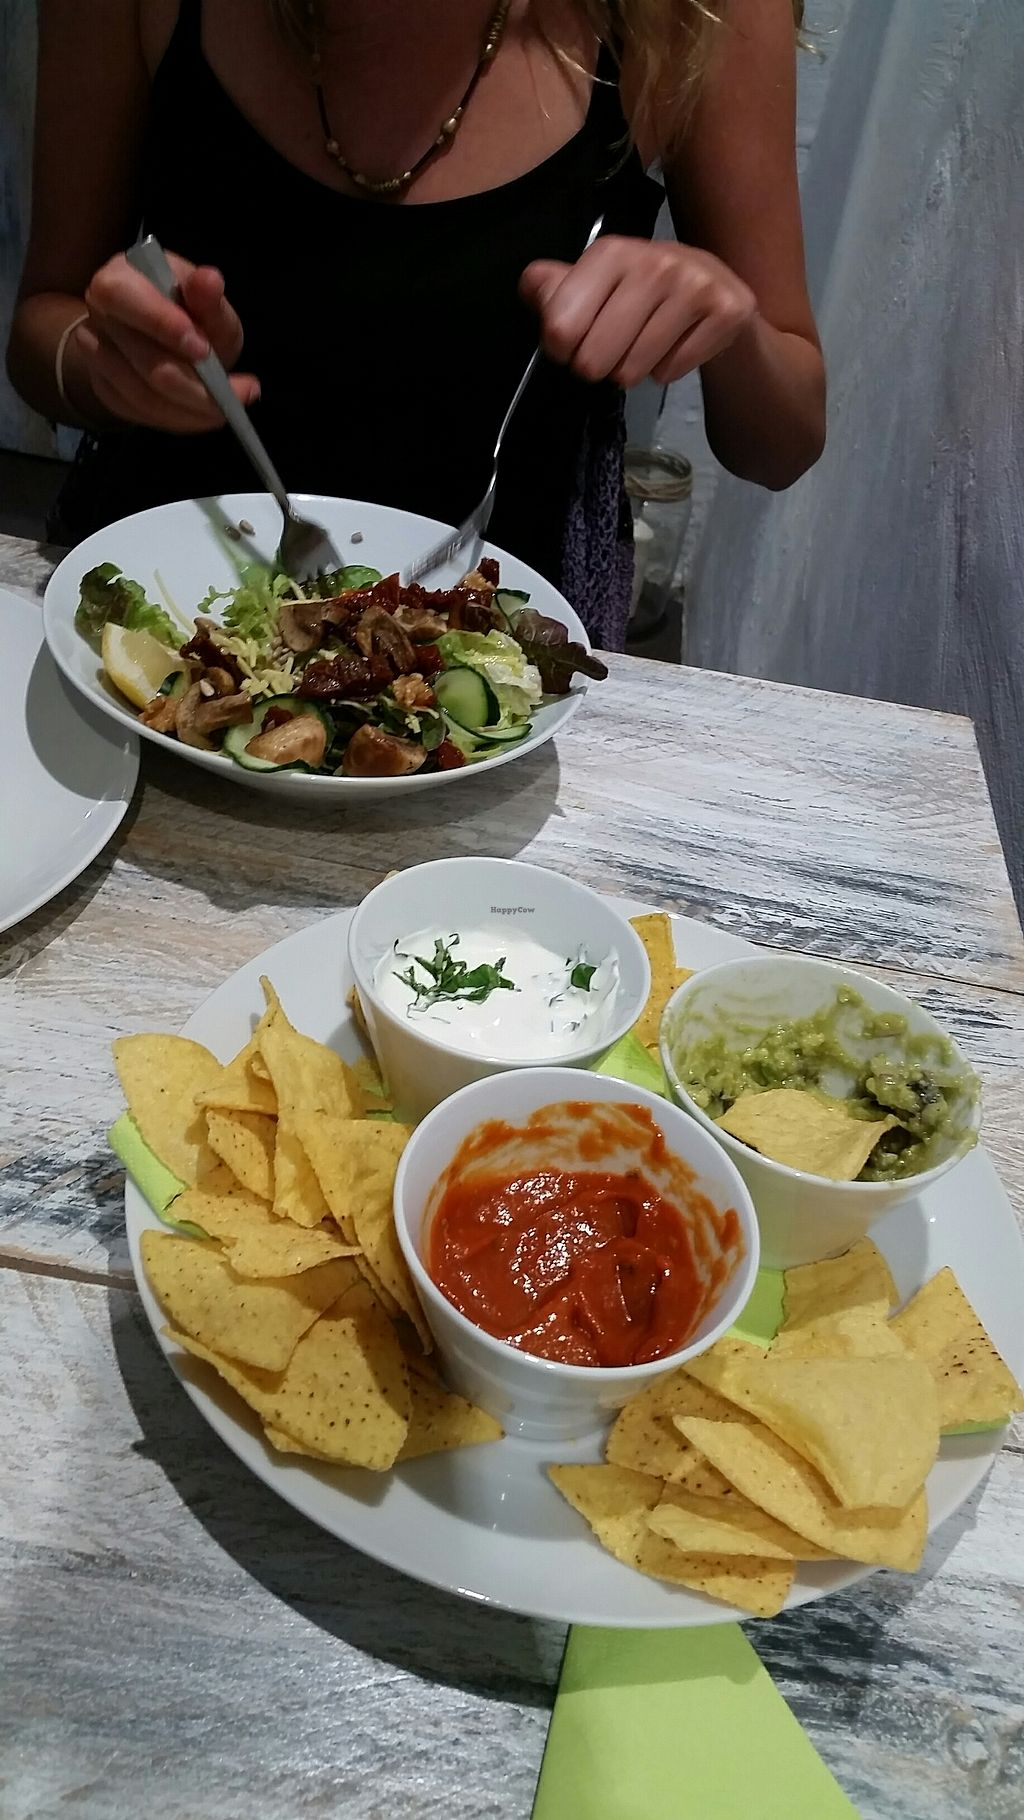 """Photo of Vegan Ibiza  by <a href=""""/members/profile/rominargh"""">rominargh</a> <br/>Nacho's with three dips <br/> July 26, 2017  - <a href='/contact/abuse/image/93478/284997'>Report</a>"""